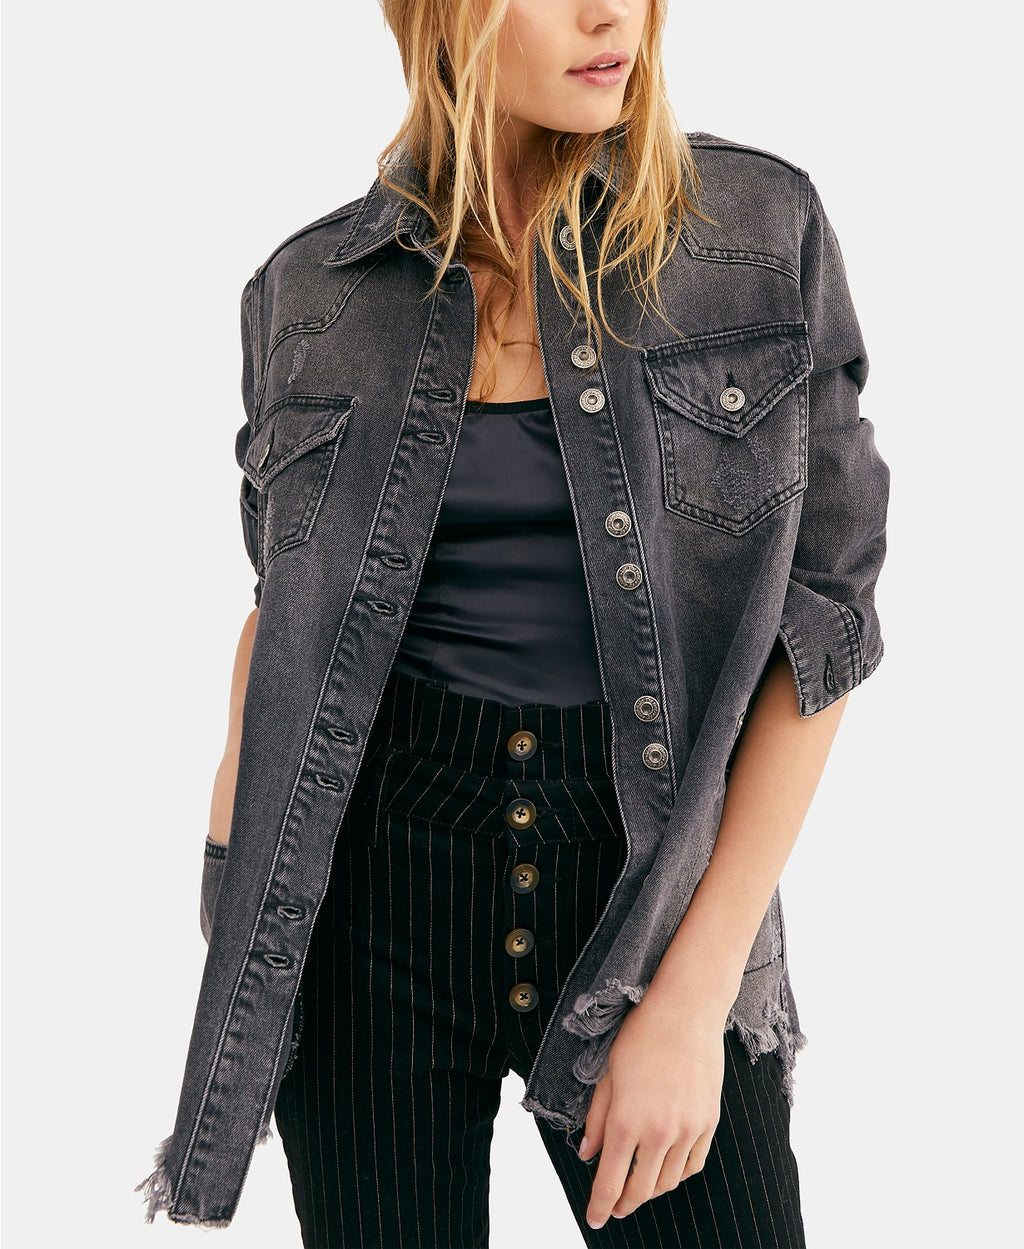 Freepeople Black denim shirt jacket